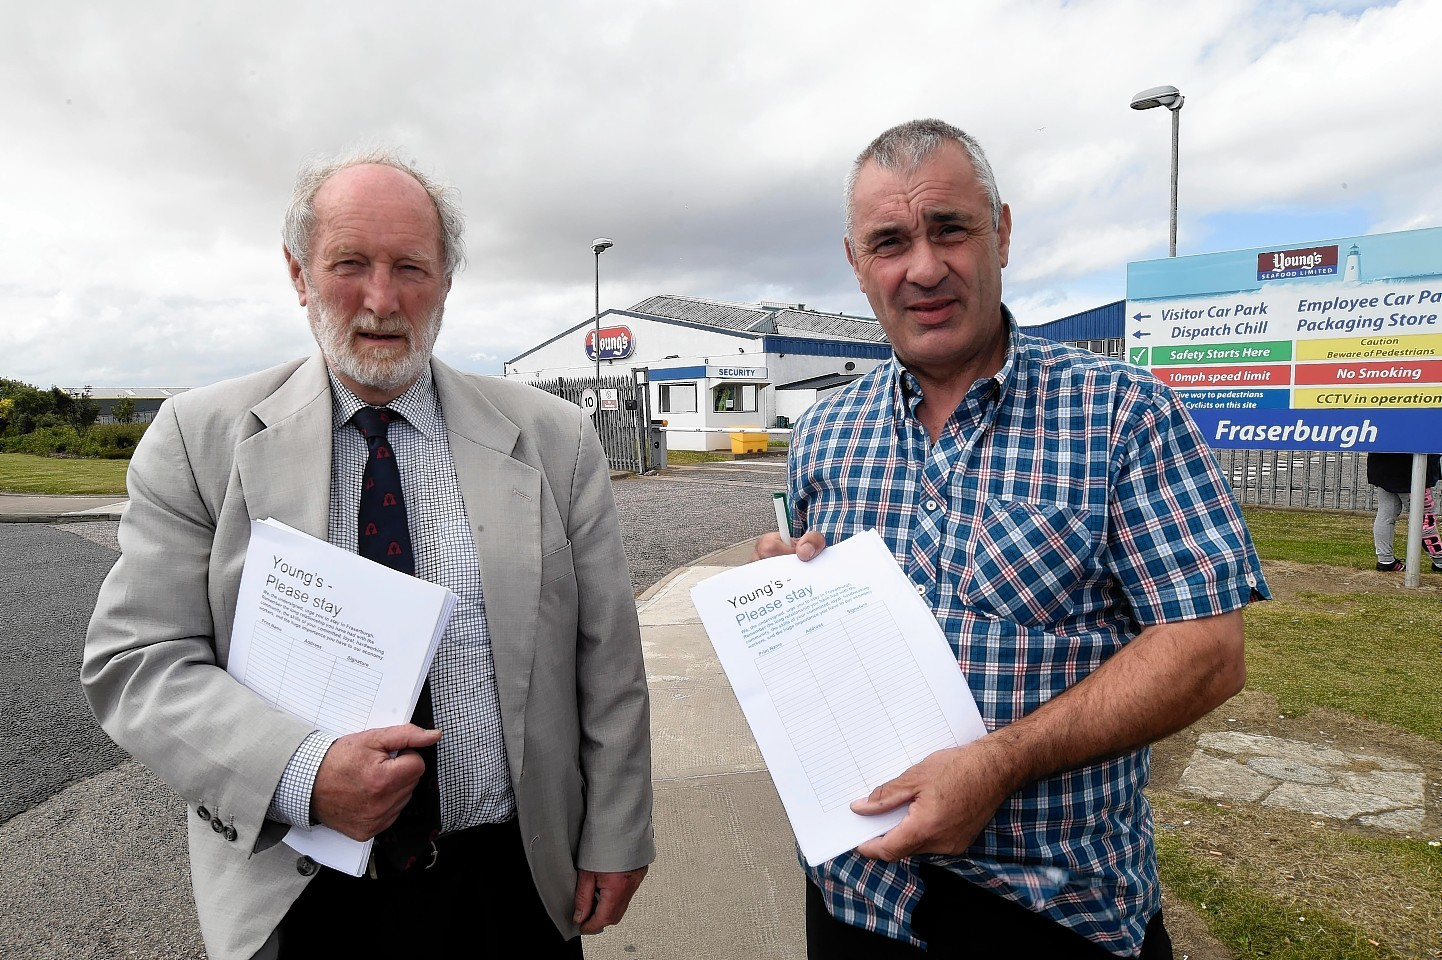 Councillors Charles Buchan and Brian Topping wih the open letter